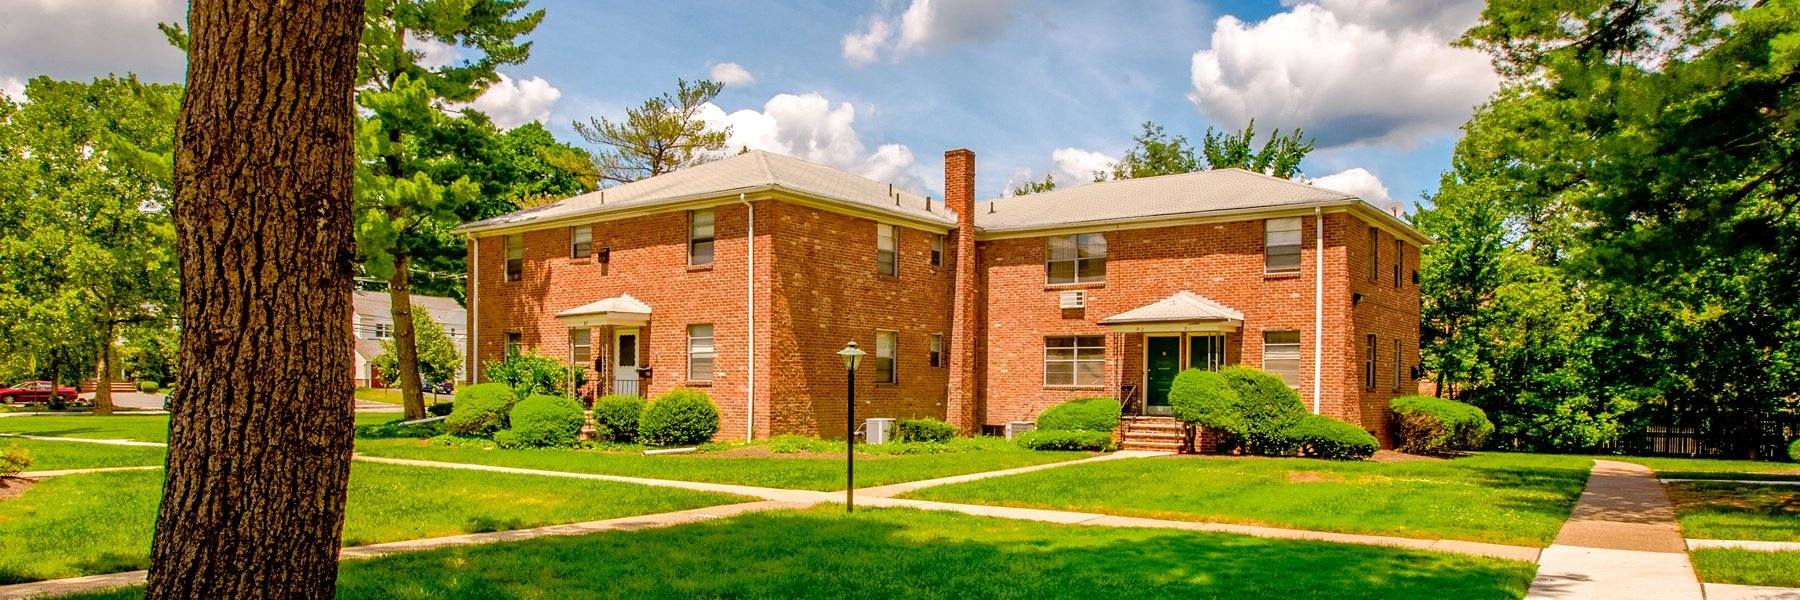 Mountain Manor Apartments For Rent in Springfield, NJ Building View